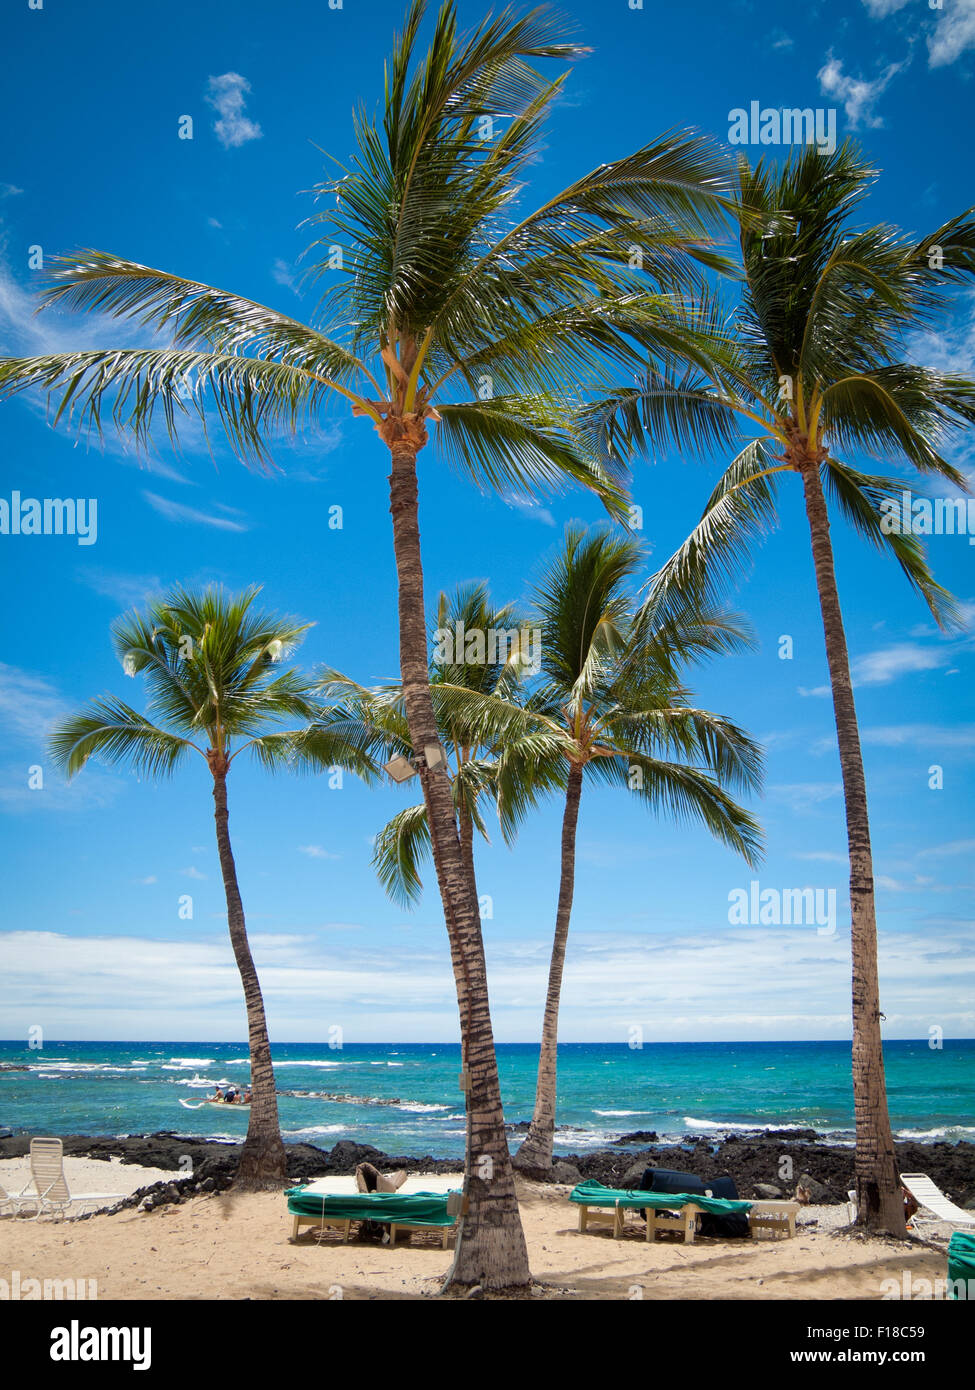 A view of coconut palms and Pauoa Bay at the Fairmont Orchid, a luxury hotel on the Kohala Coast of Hawai'i - Stock Image